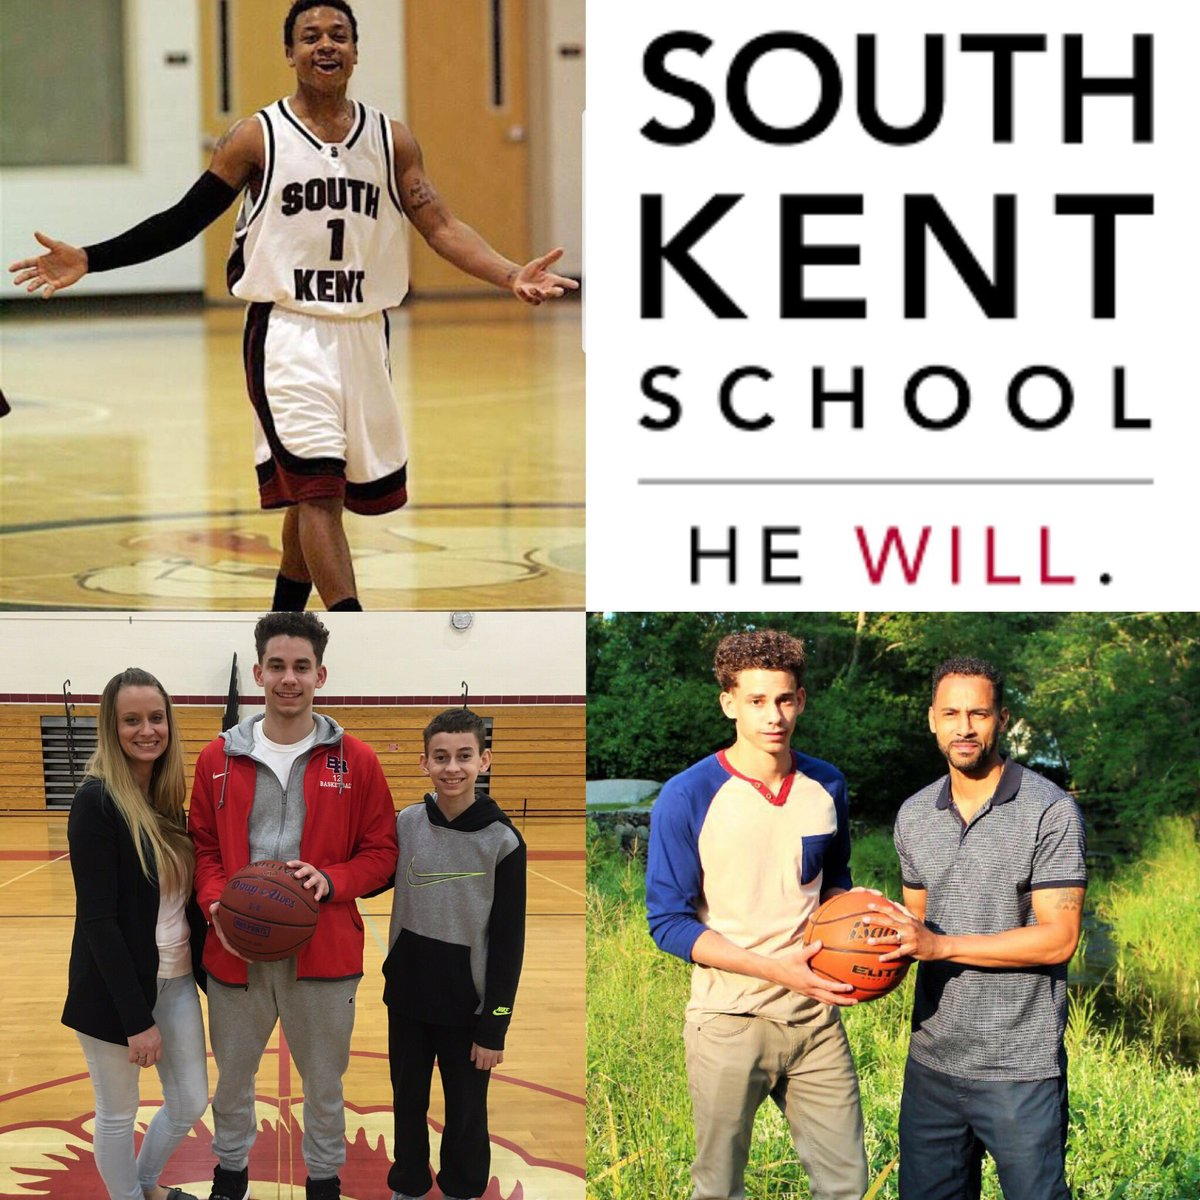 Doug Alves Commits to the South Kent School